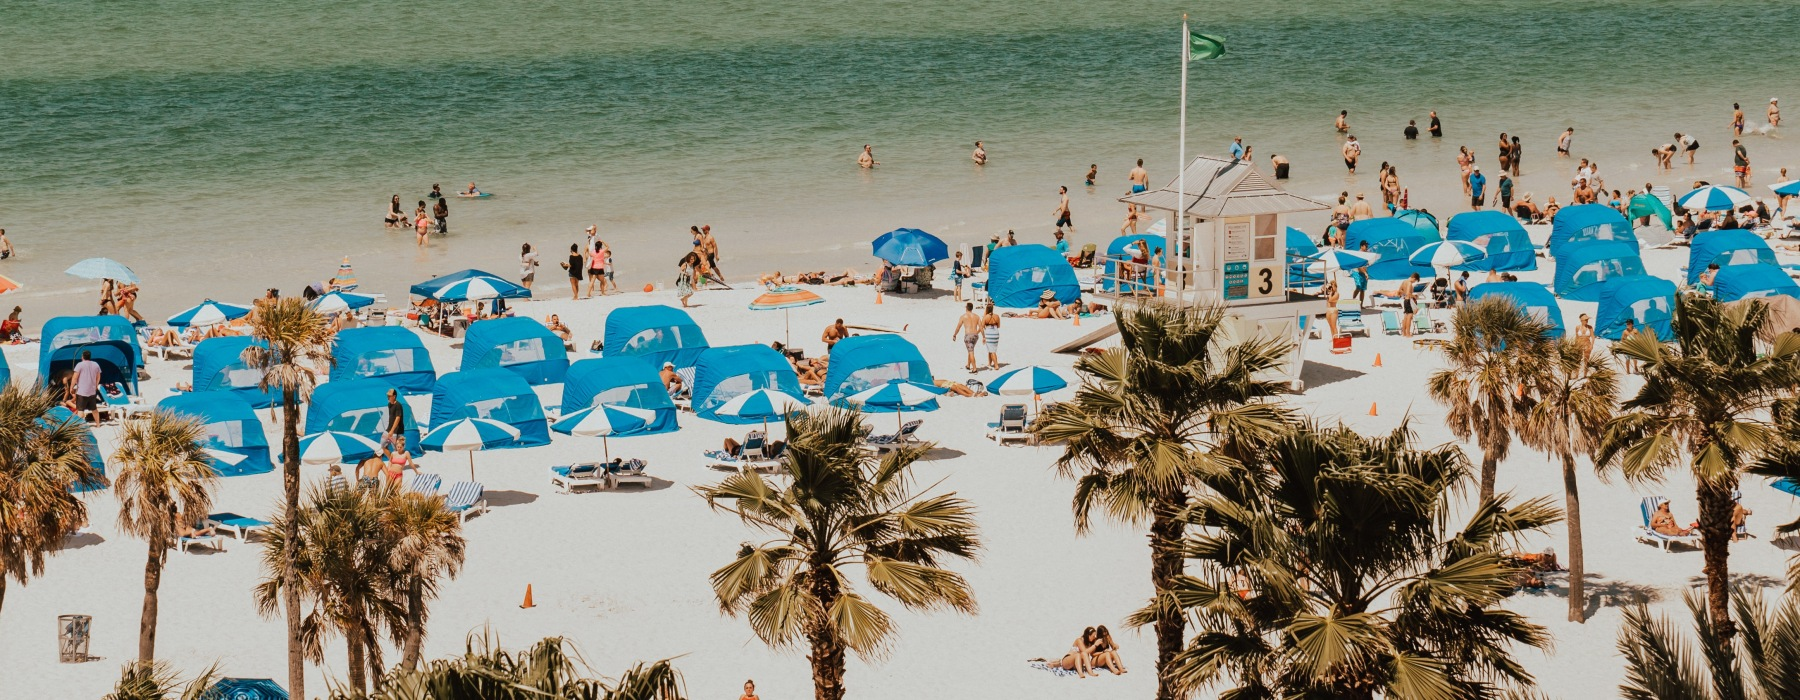 Clearwater Beach During the Day Filled with People